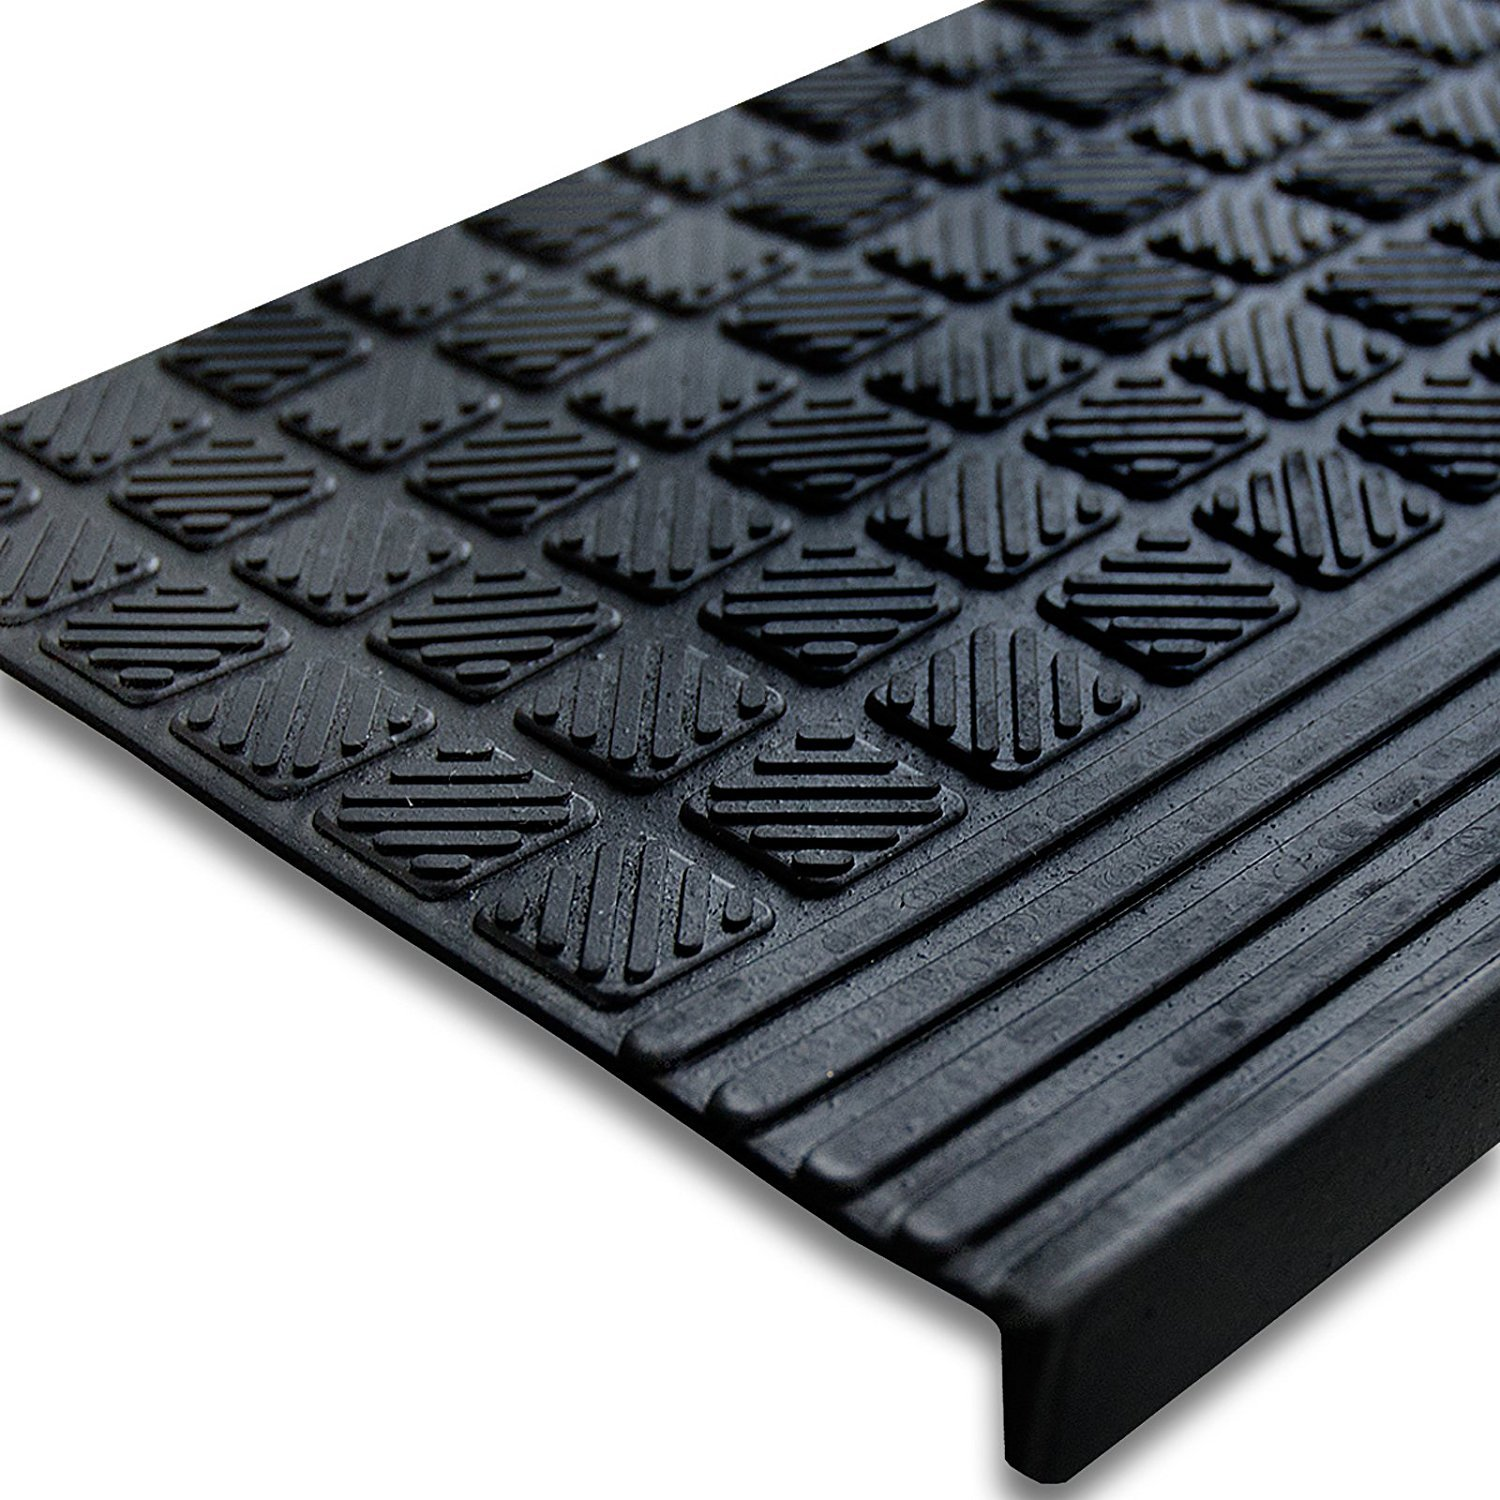 Rubber mats for stairs - Etm Set Of 5 Outdoor Rubber Non Slip Stair Treads Diamond 0 8